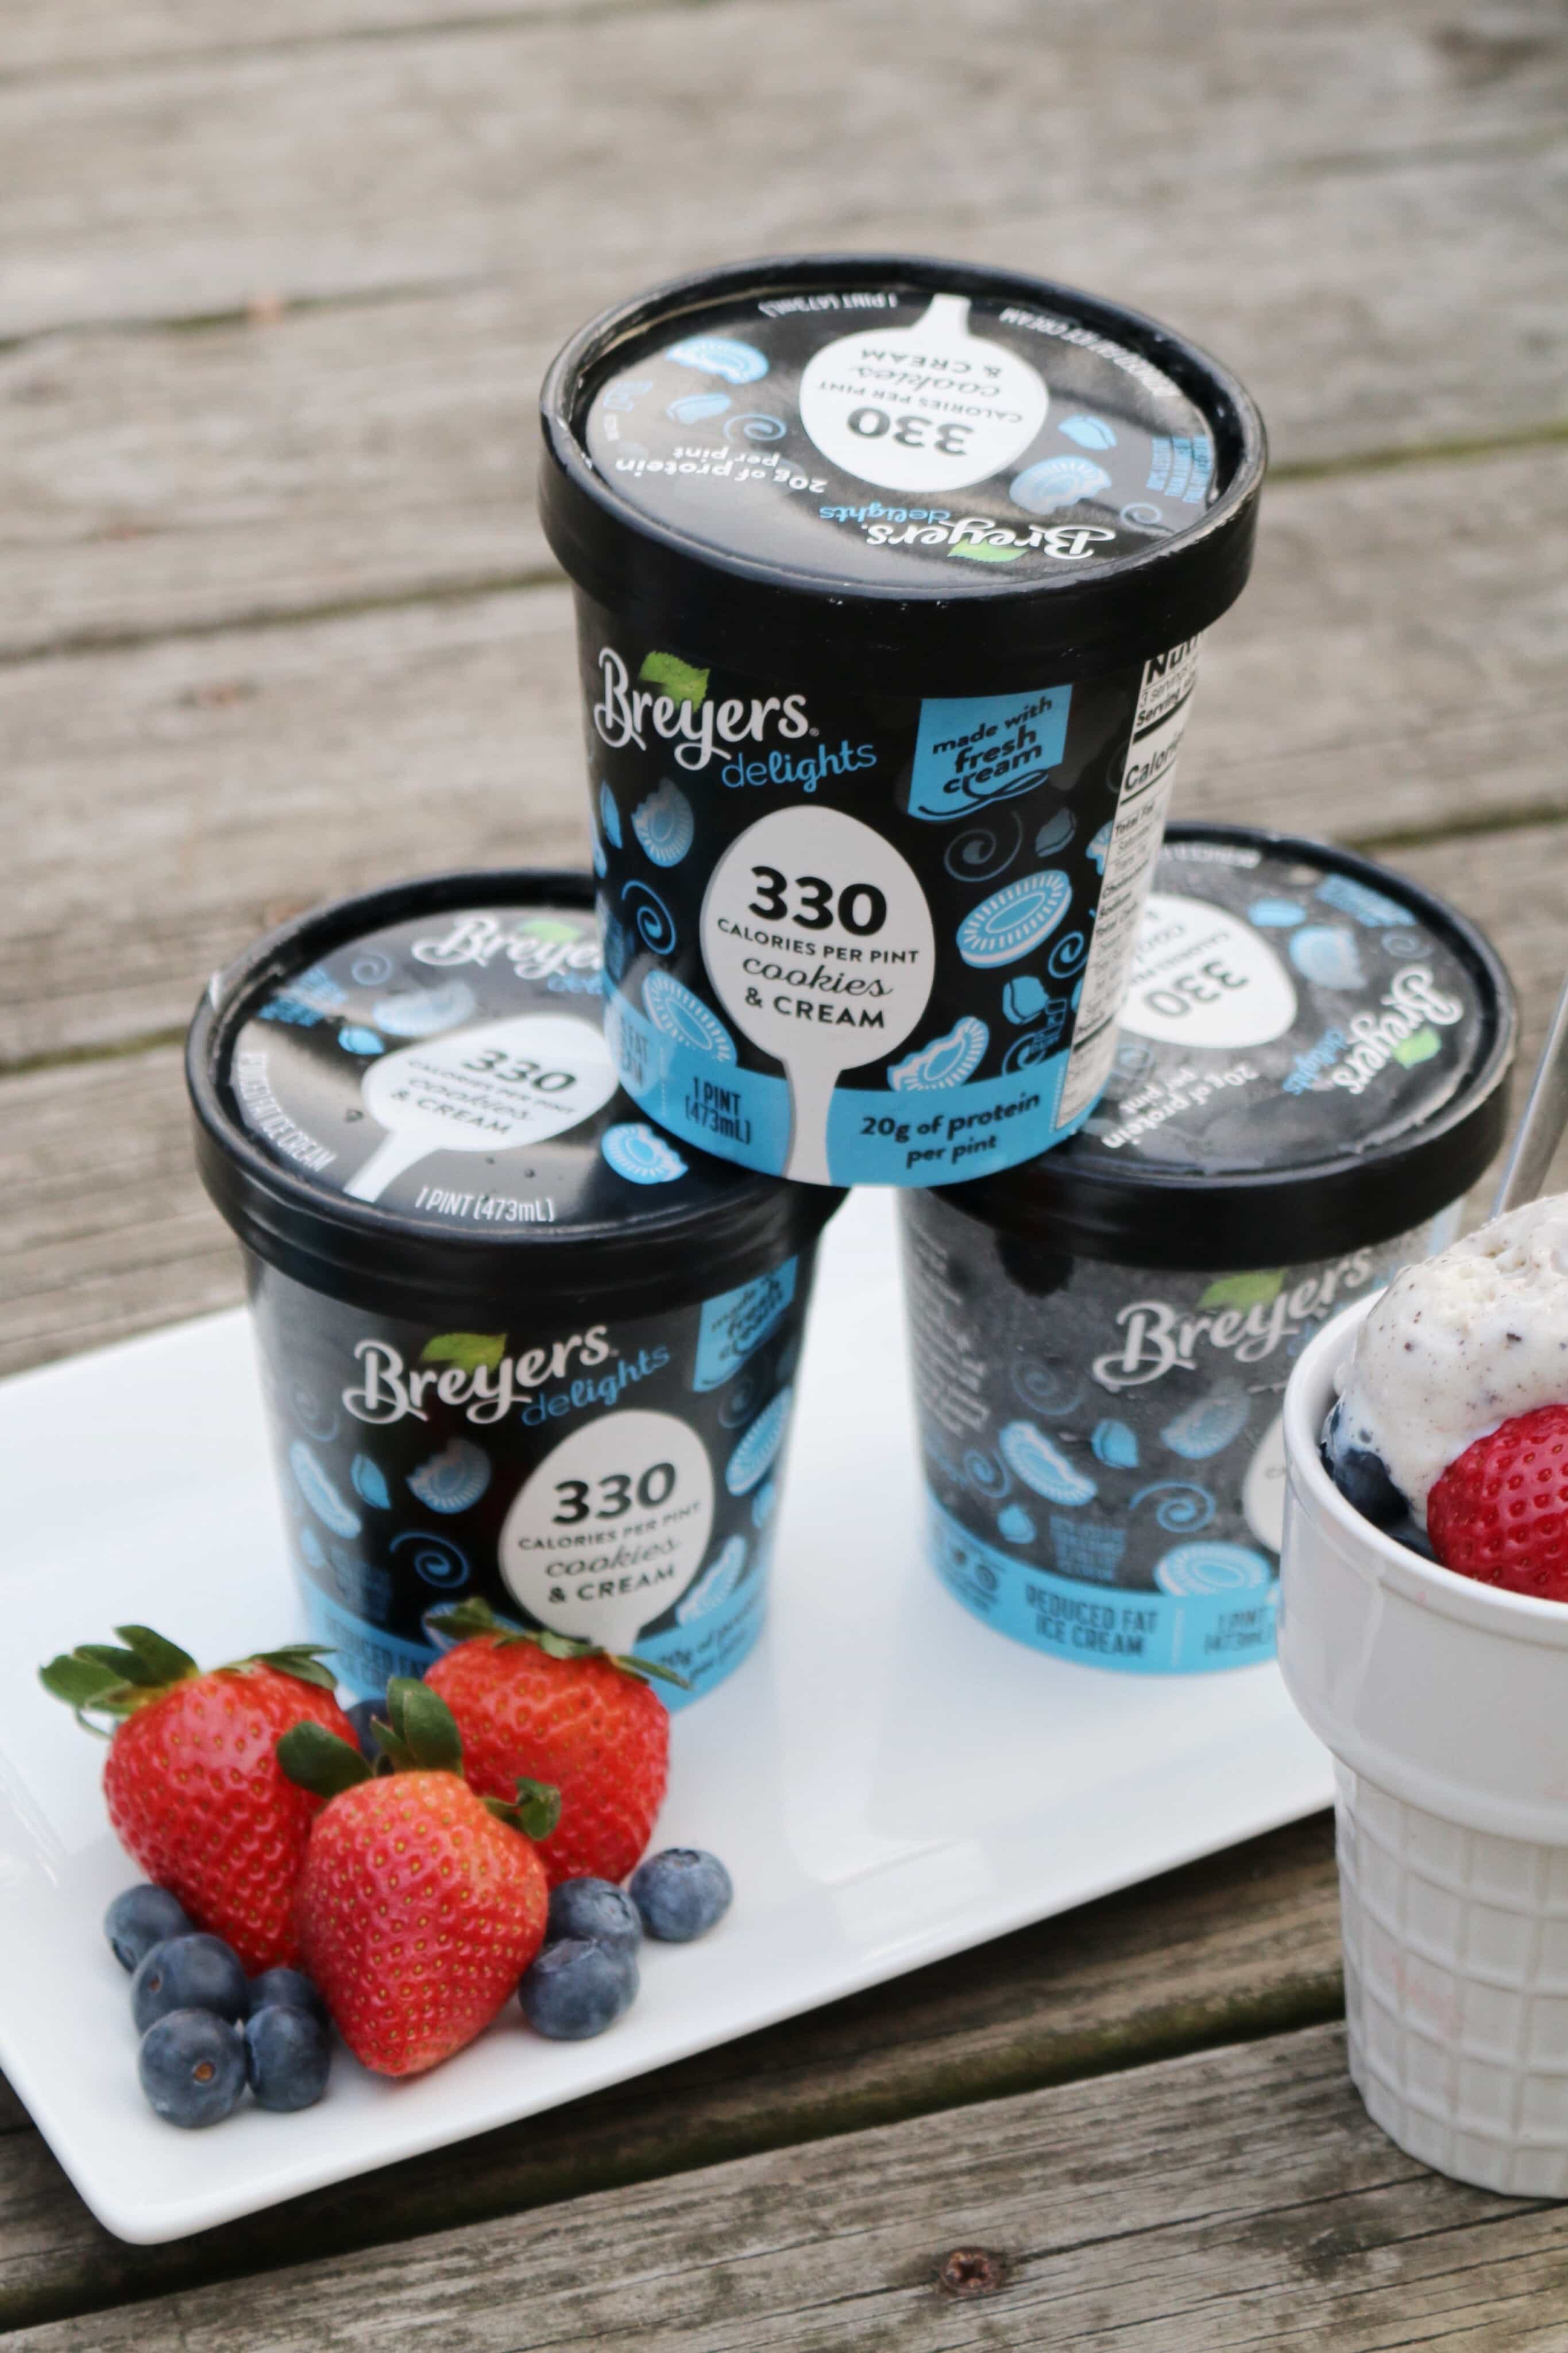 Enlight920 - How do I enjoy a pint of ice cream without all the guilt? Breyers delights!